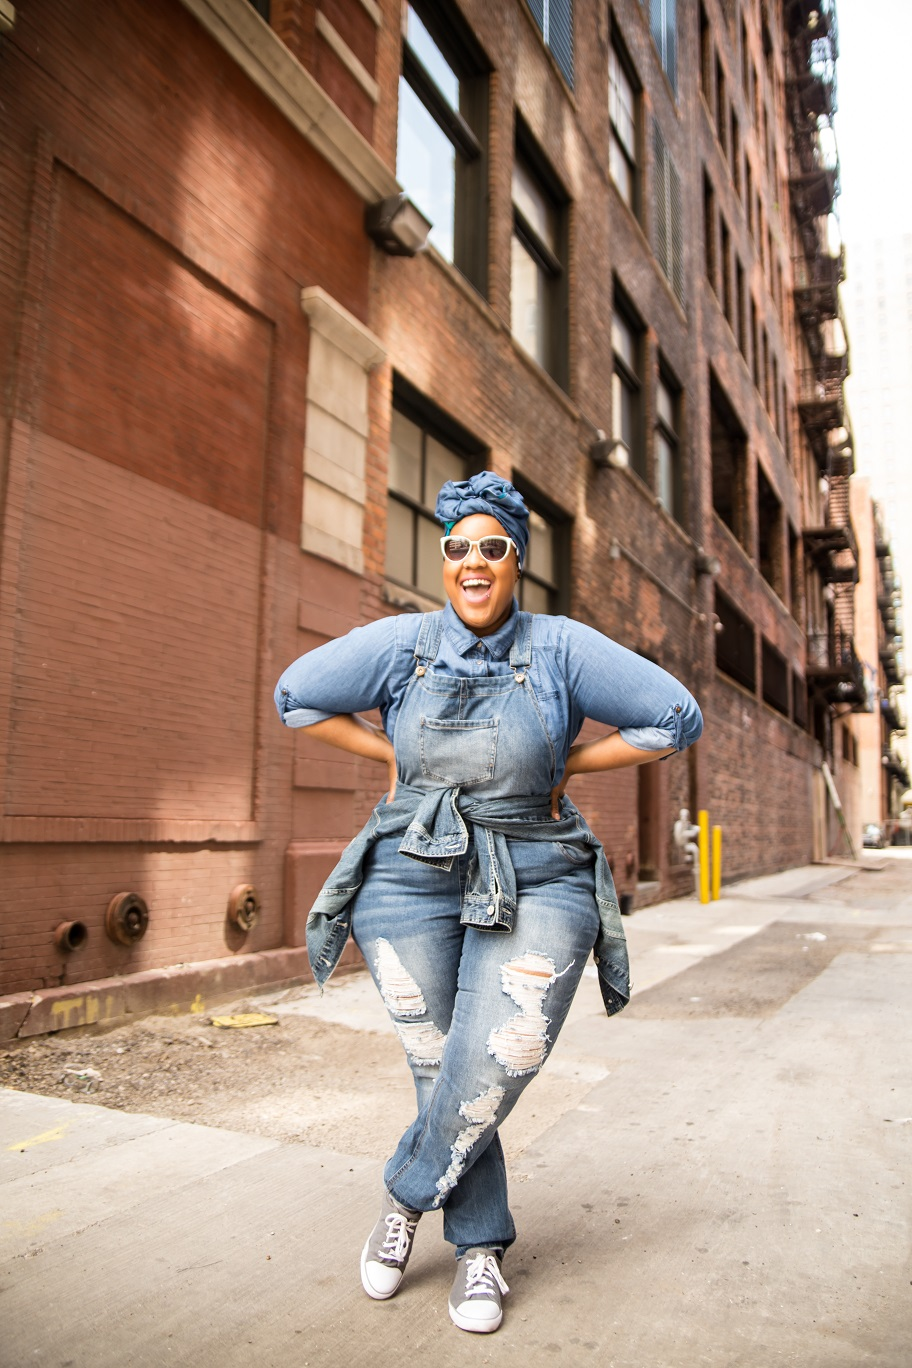 Leah-Vernon-Plus-Size-Model-Detroit-Blogger-Muslim-Girl-Body-positive-2